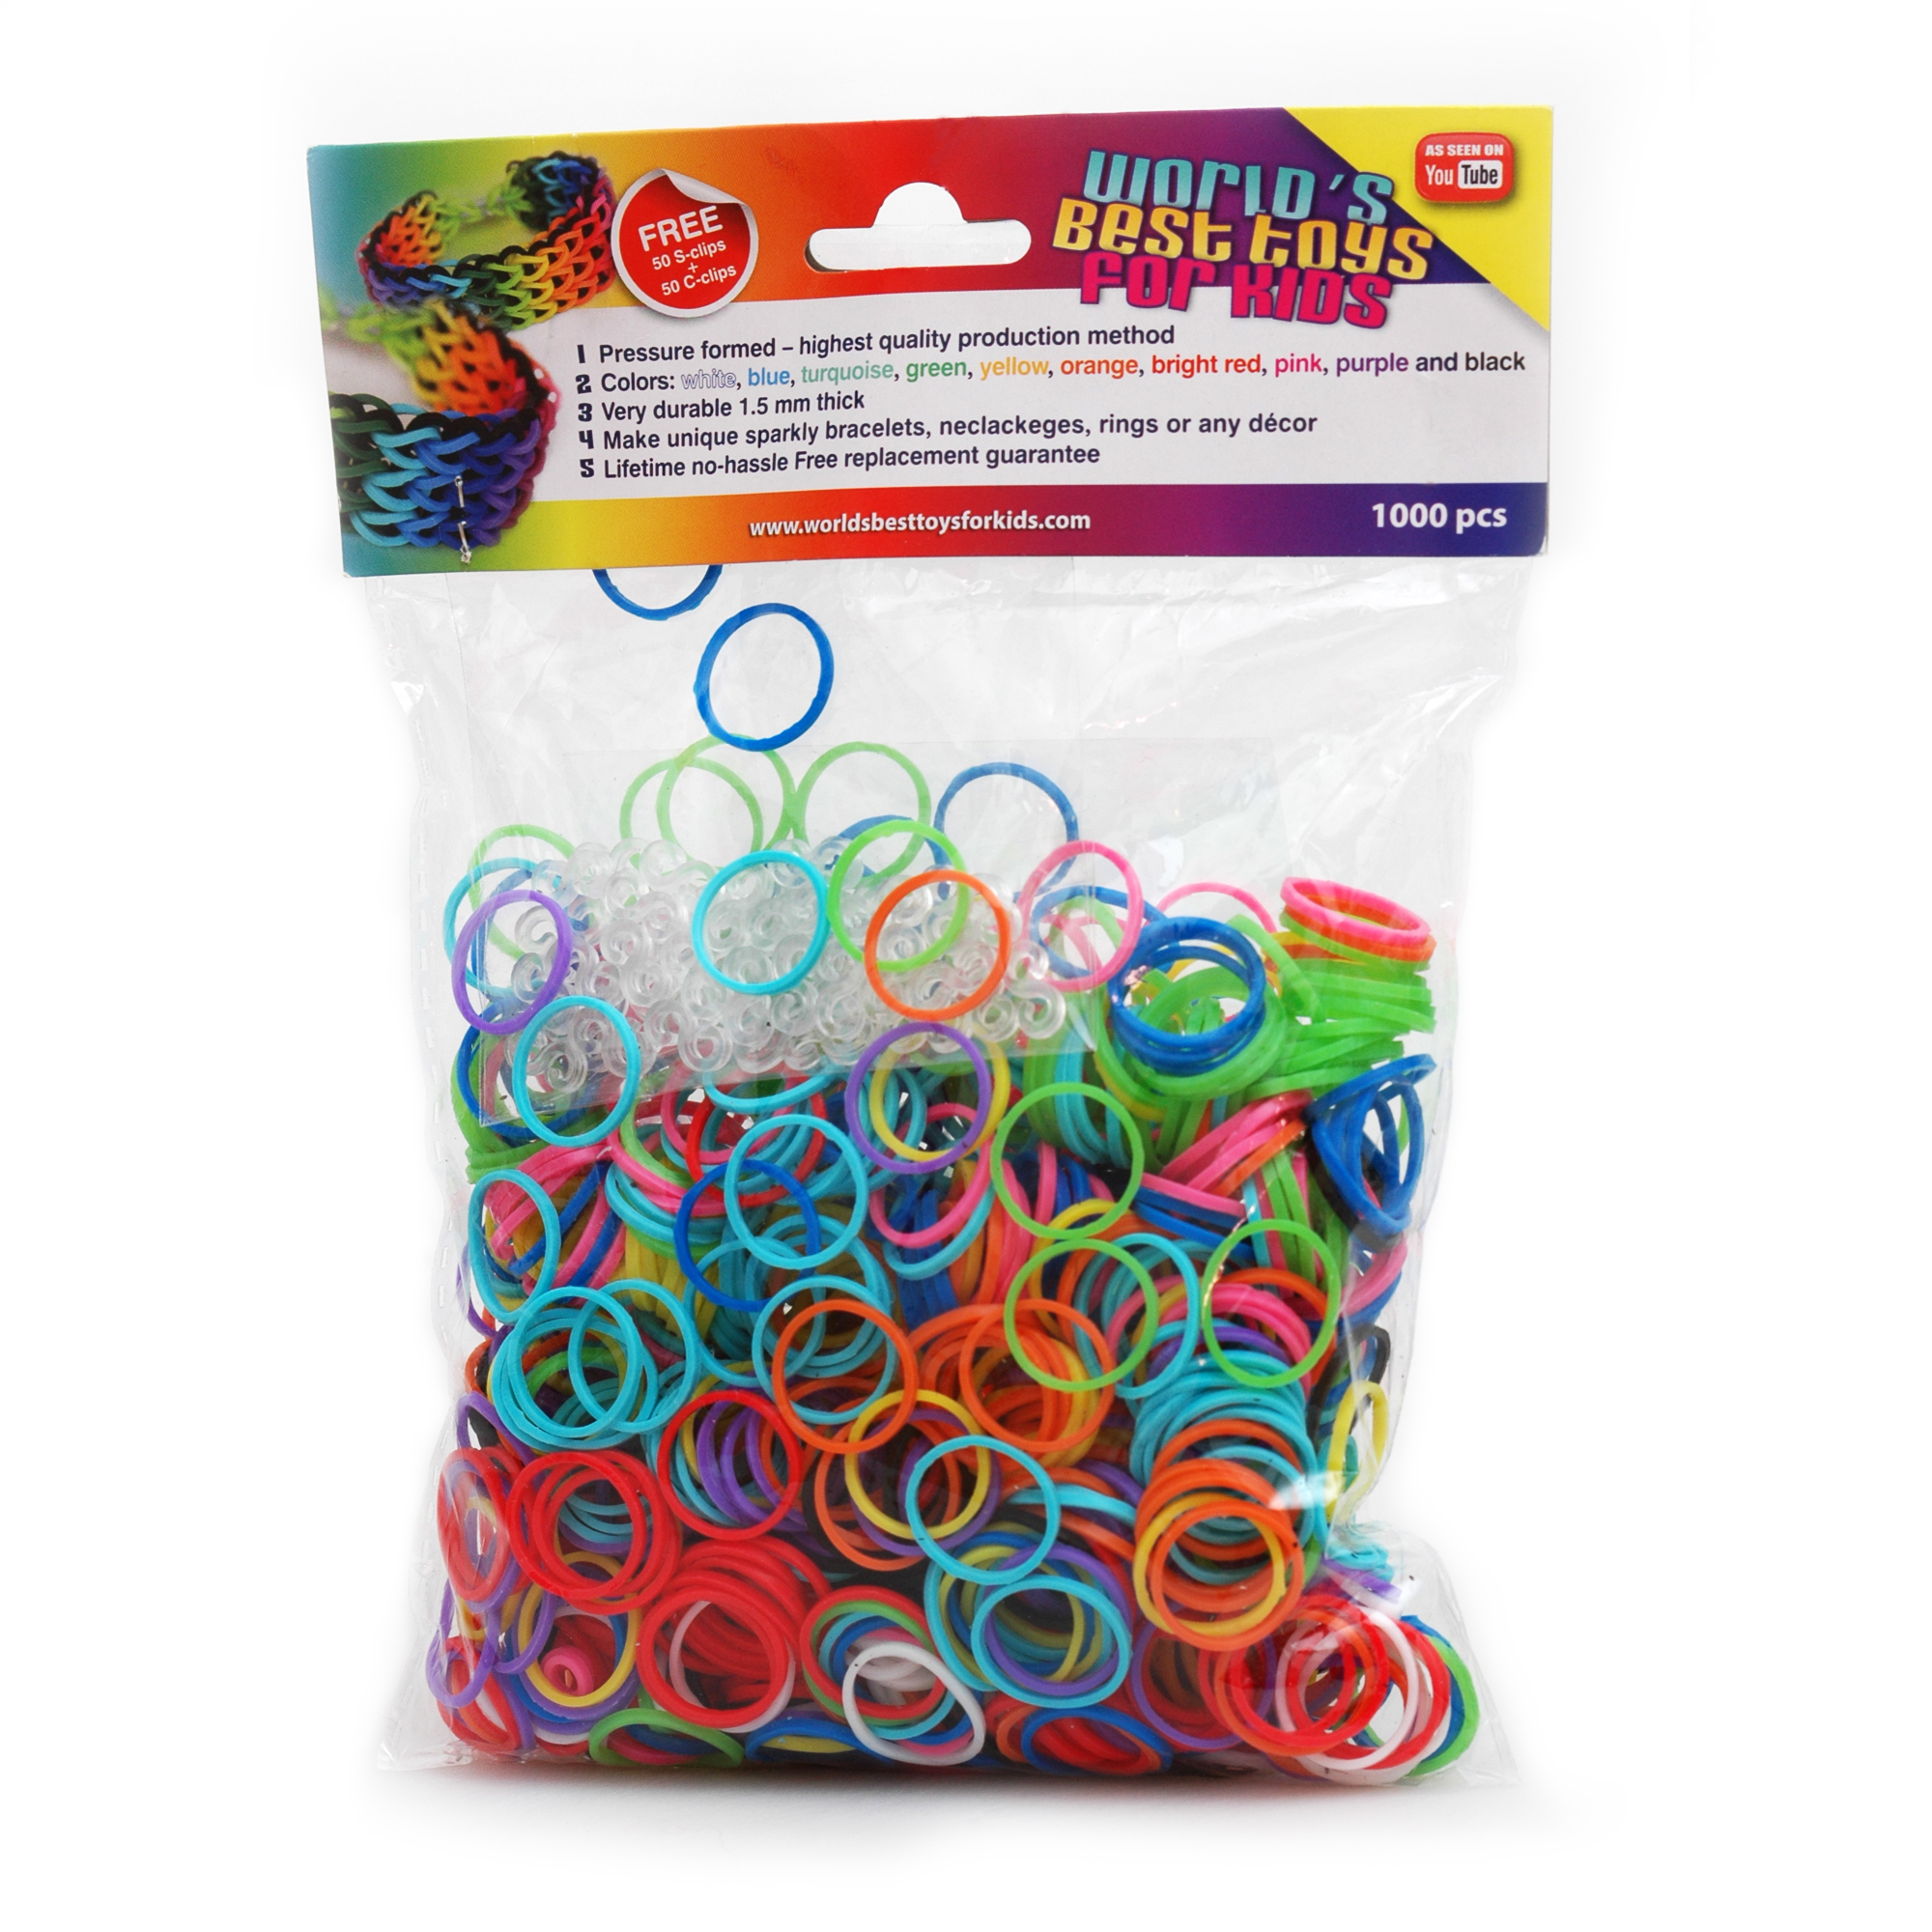 New Rainbow Loom Rubber Band Refills Feature Compression